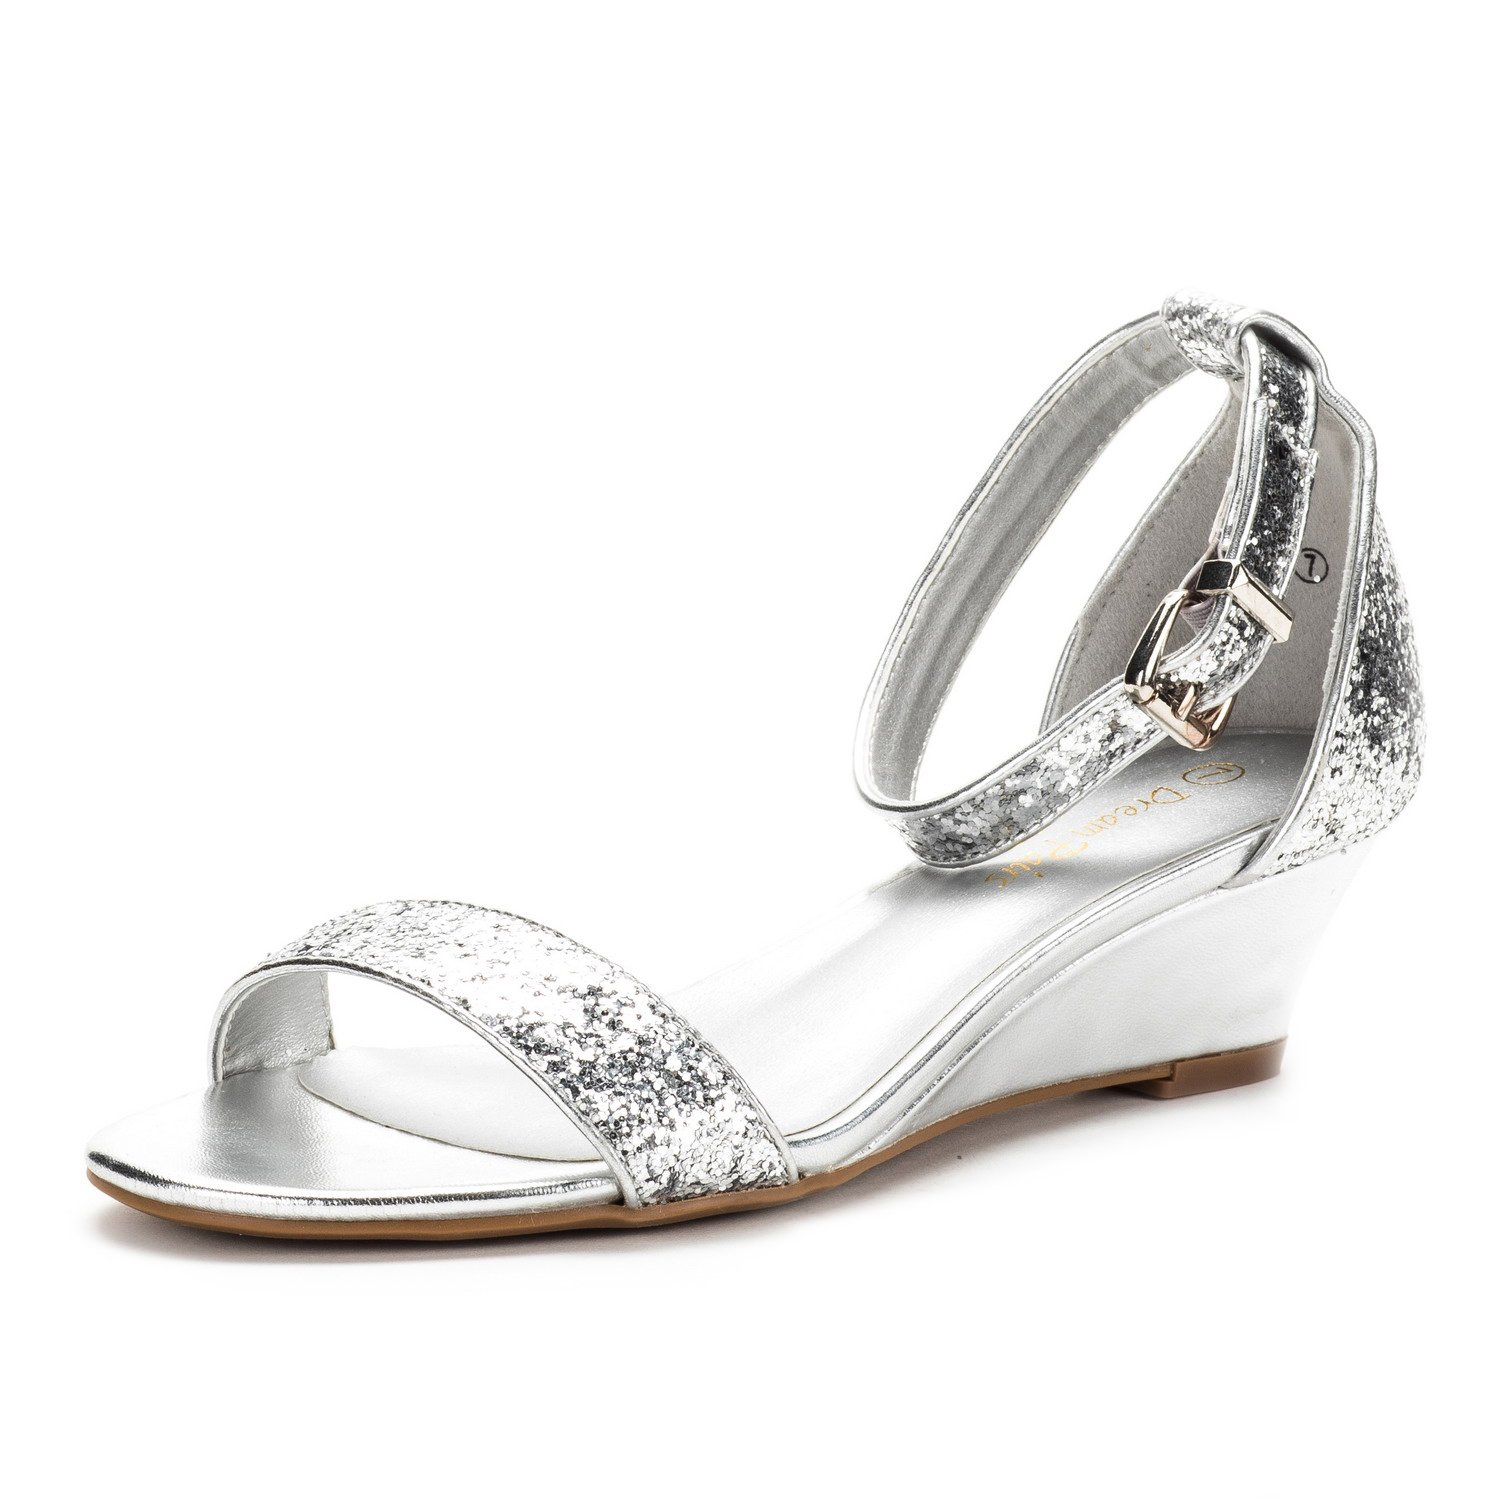 0d08a1511b77f DREAM PAIRS Women's Ingrid Silver Glitter Ankle Strap Low Wedge Sandals  Size 8.5 M US by